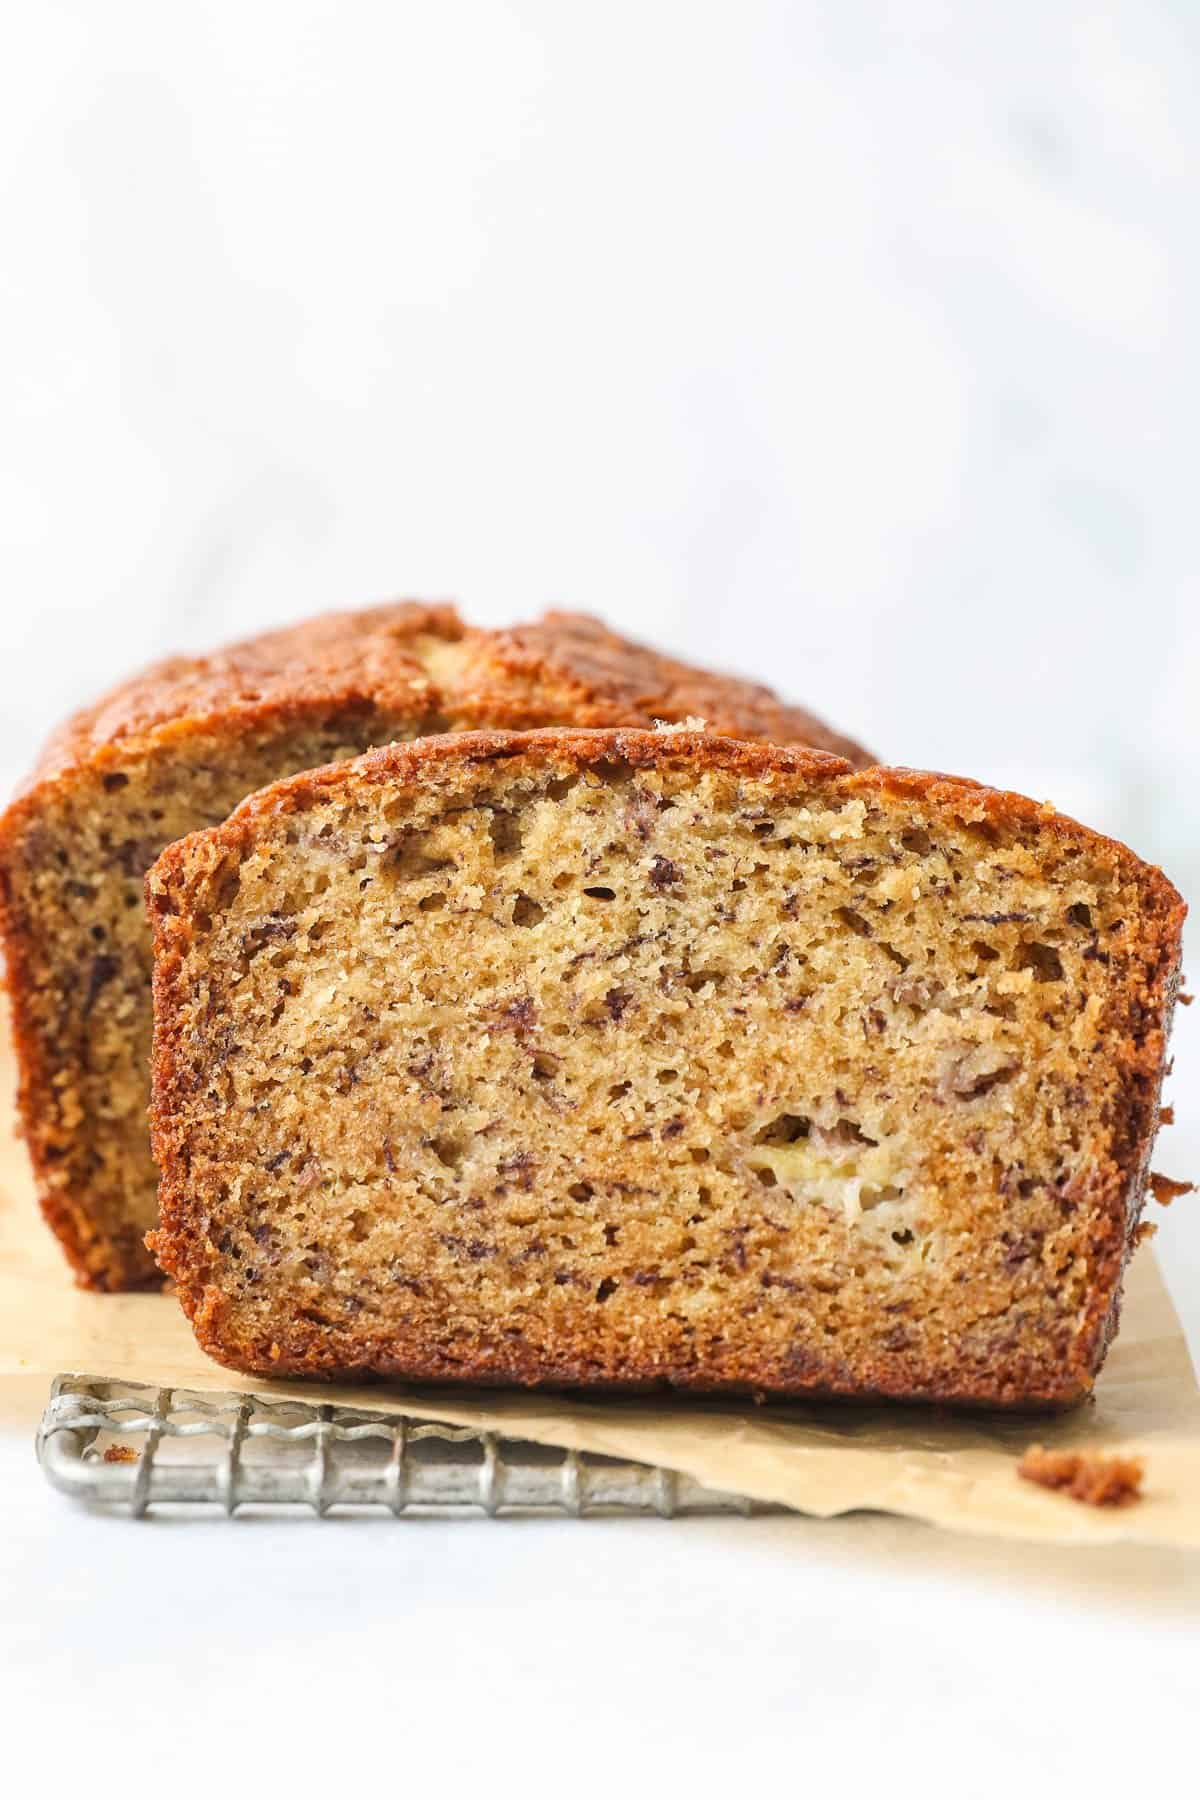 A slice of banana bread in front of a full loaf.